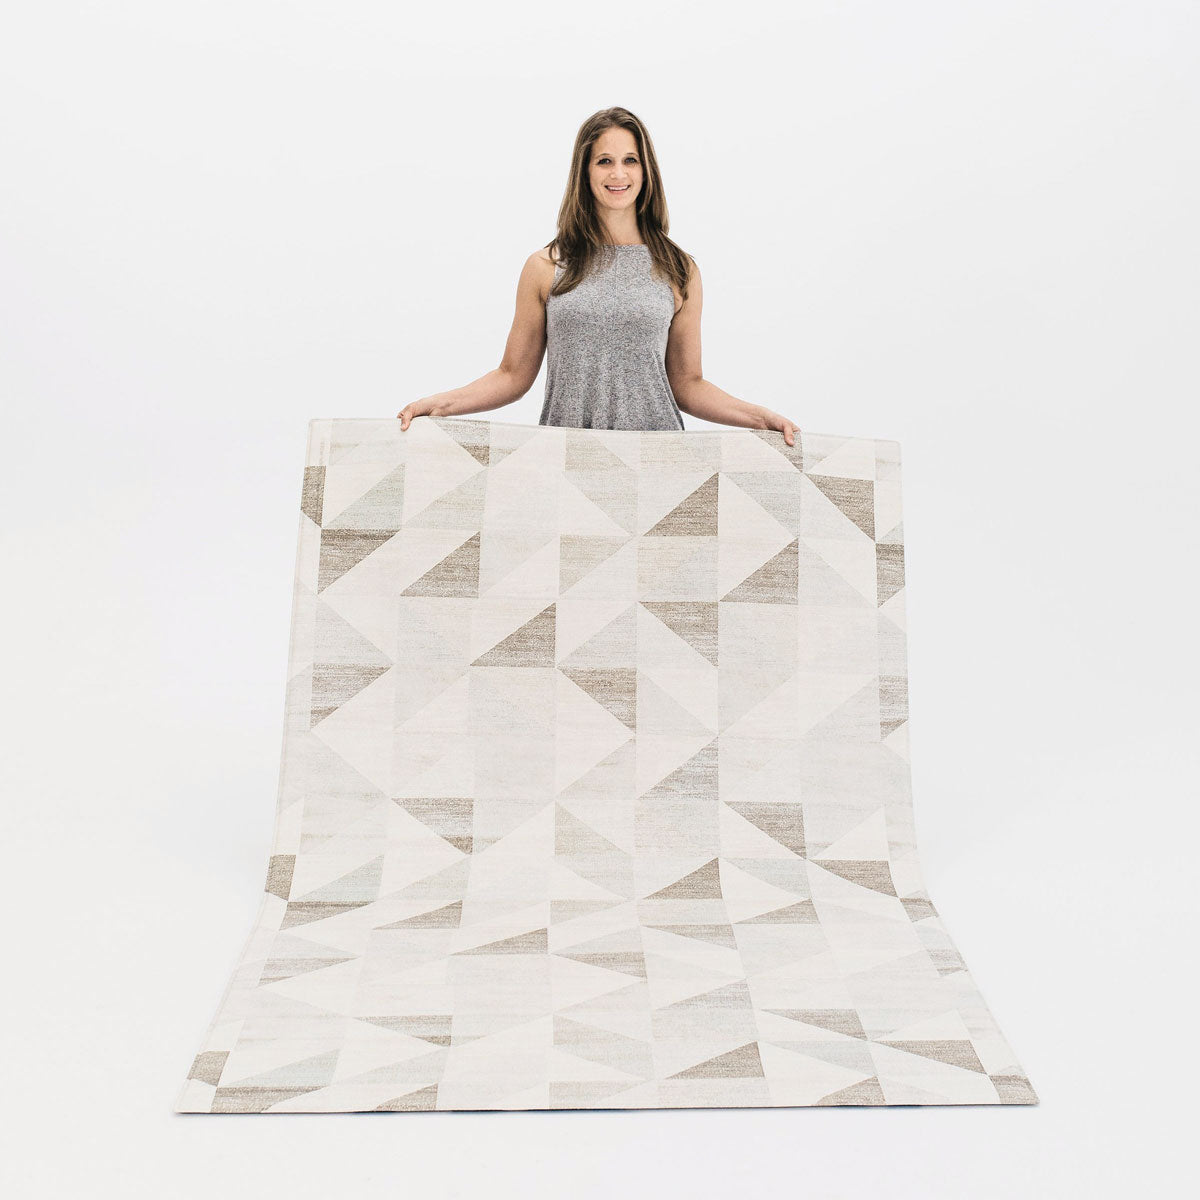 The Lulu Rug by Ruggish • Two-Sided, Memory Foam Play Mat with Modern, Geometric Designer Rug Pattern